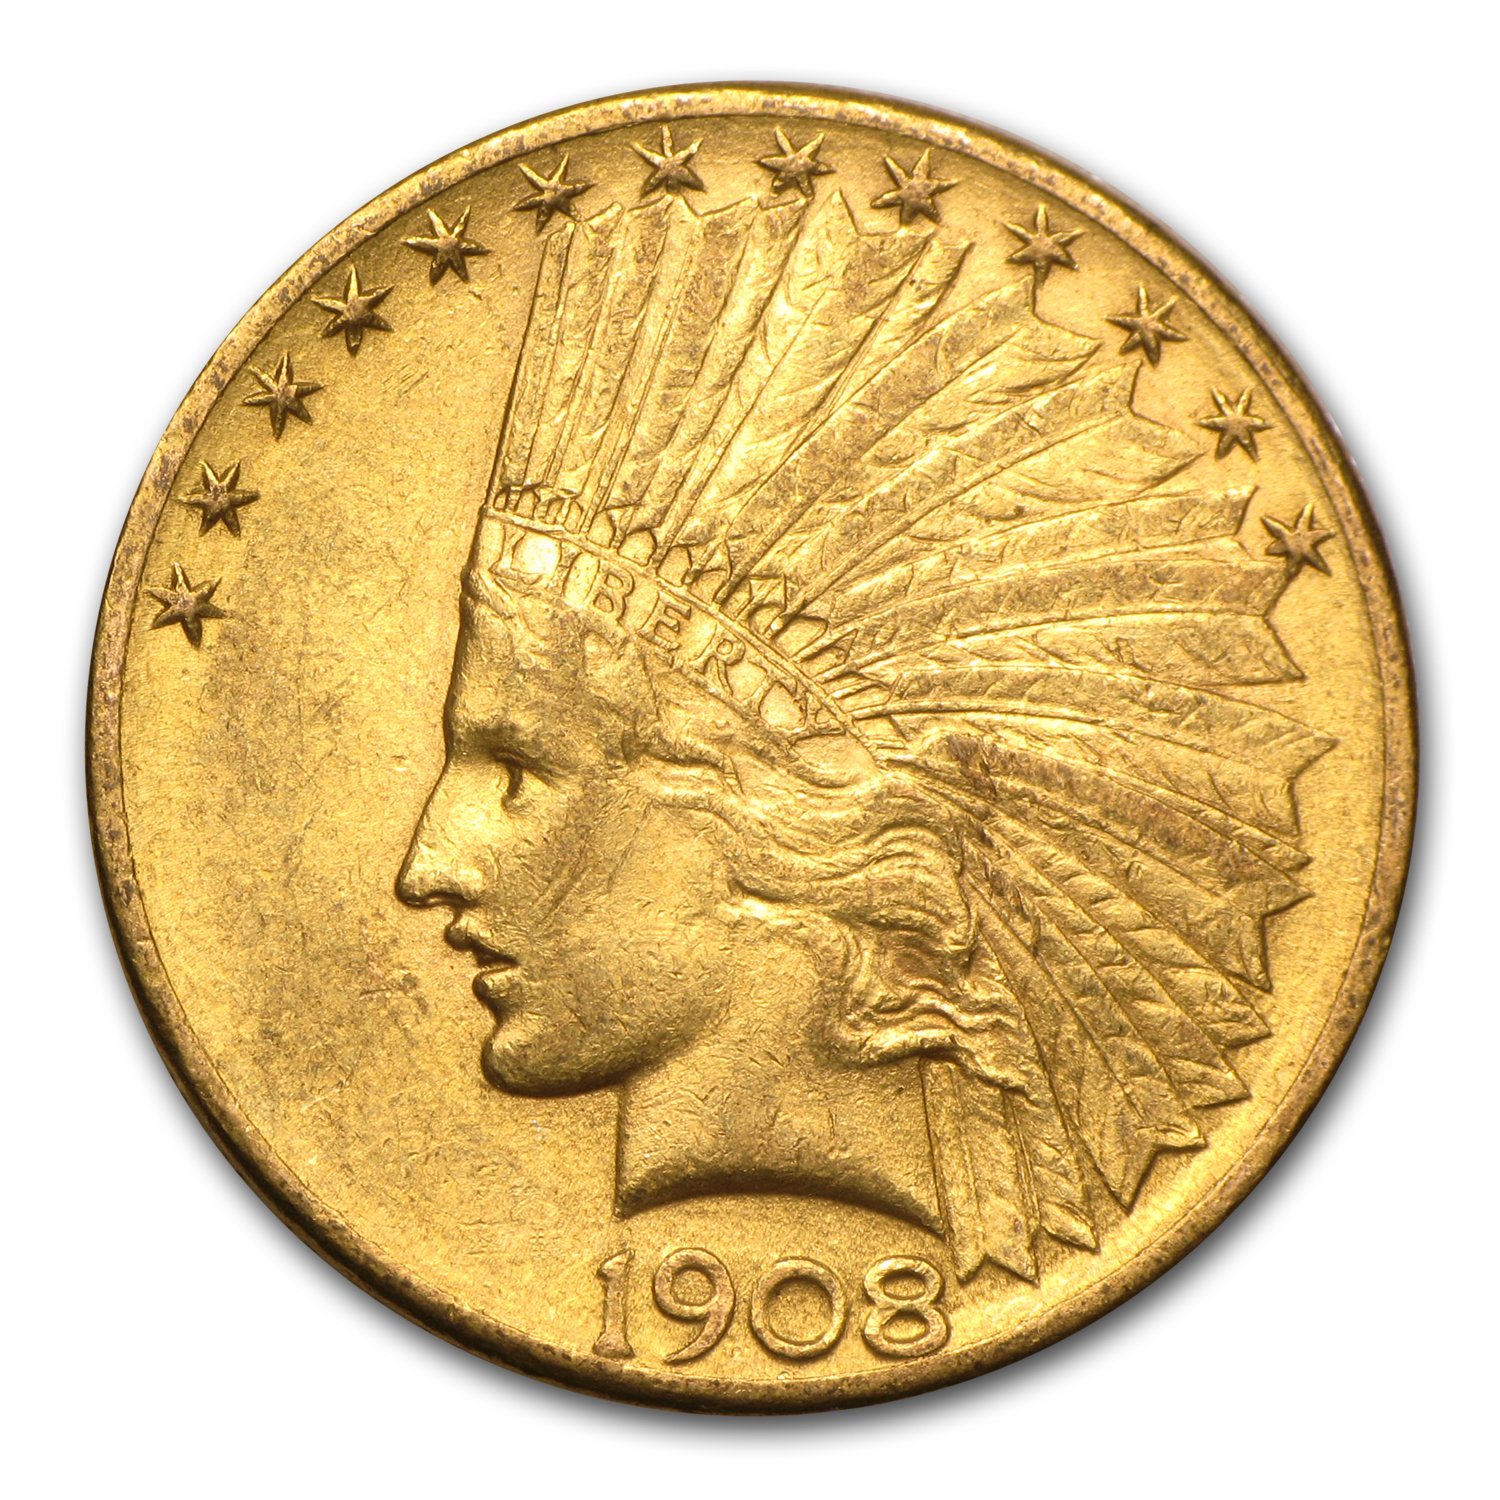 1908-D $10 Indian Gold Eagle w/Motto AU